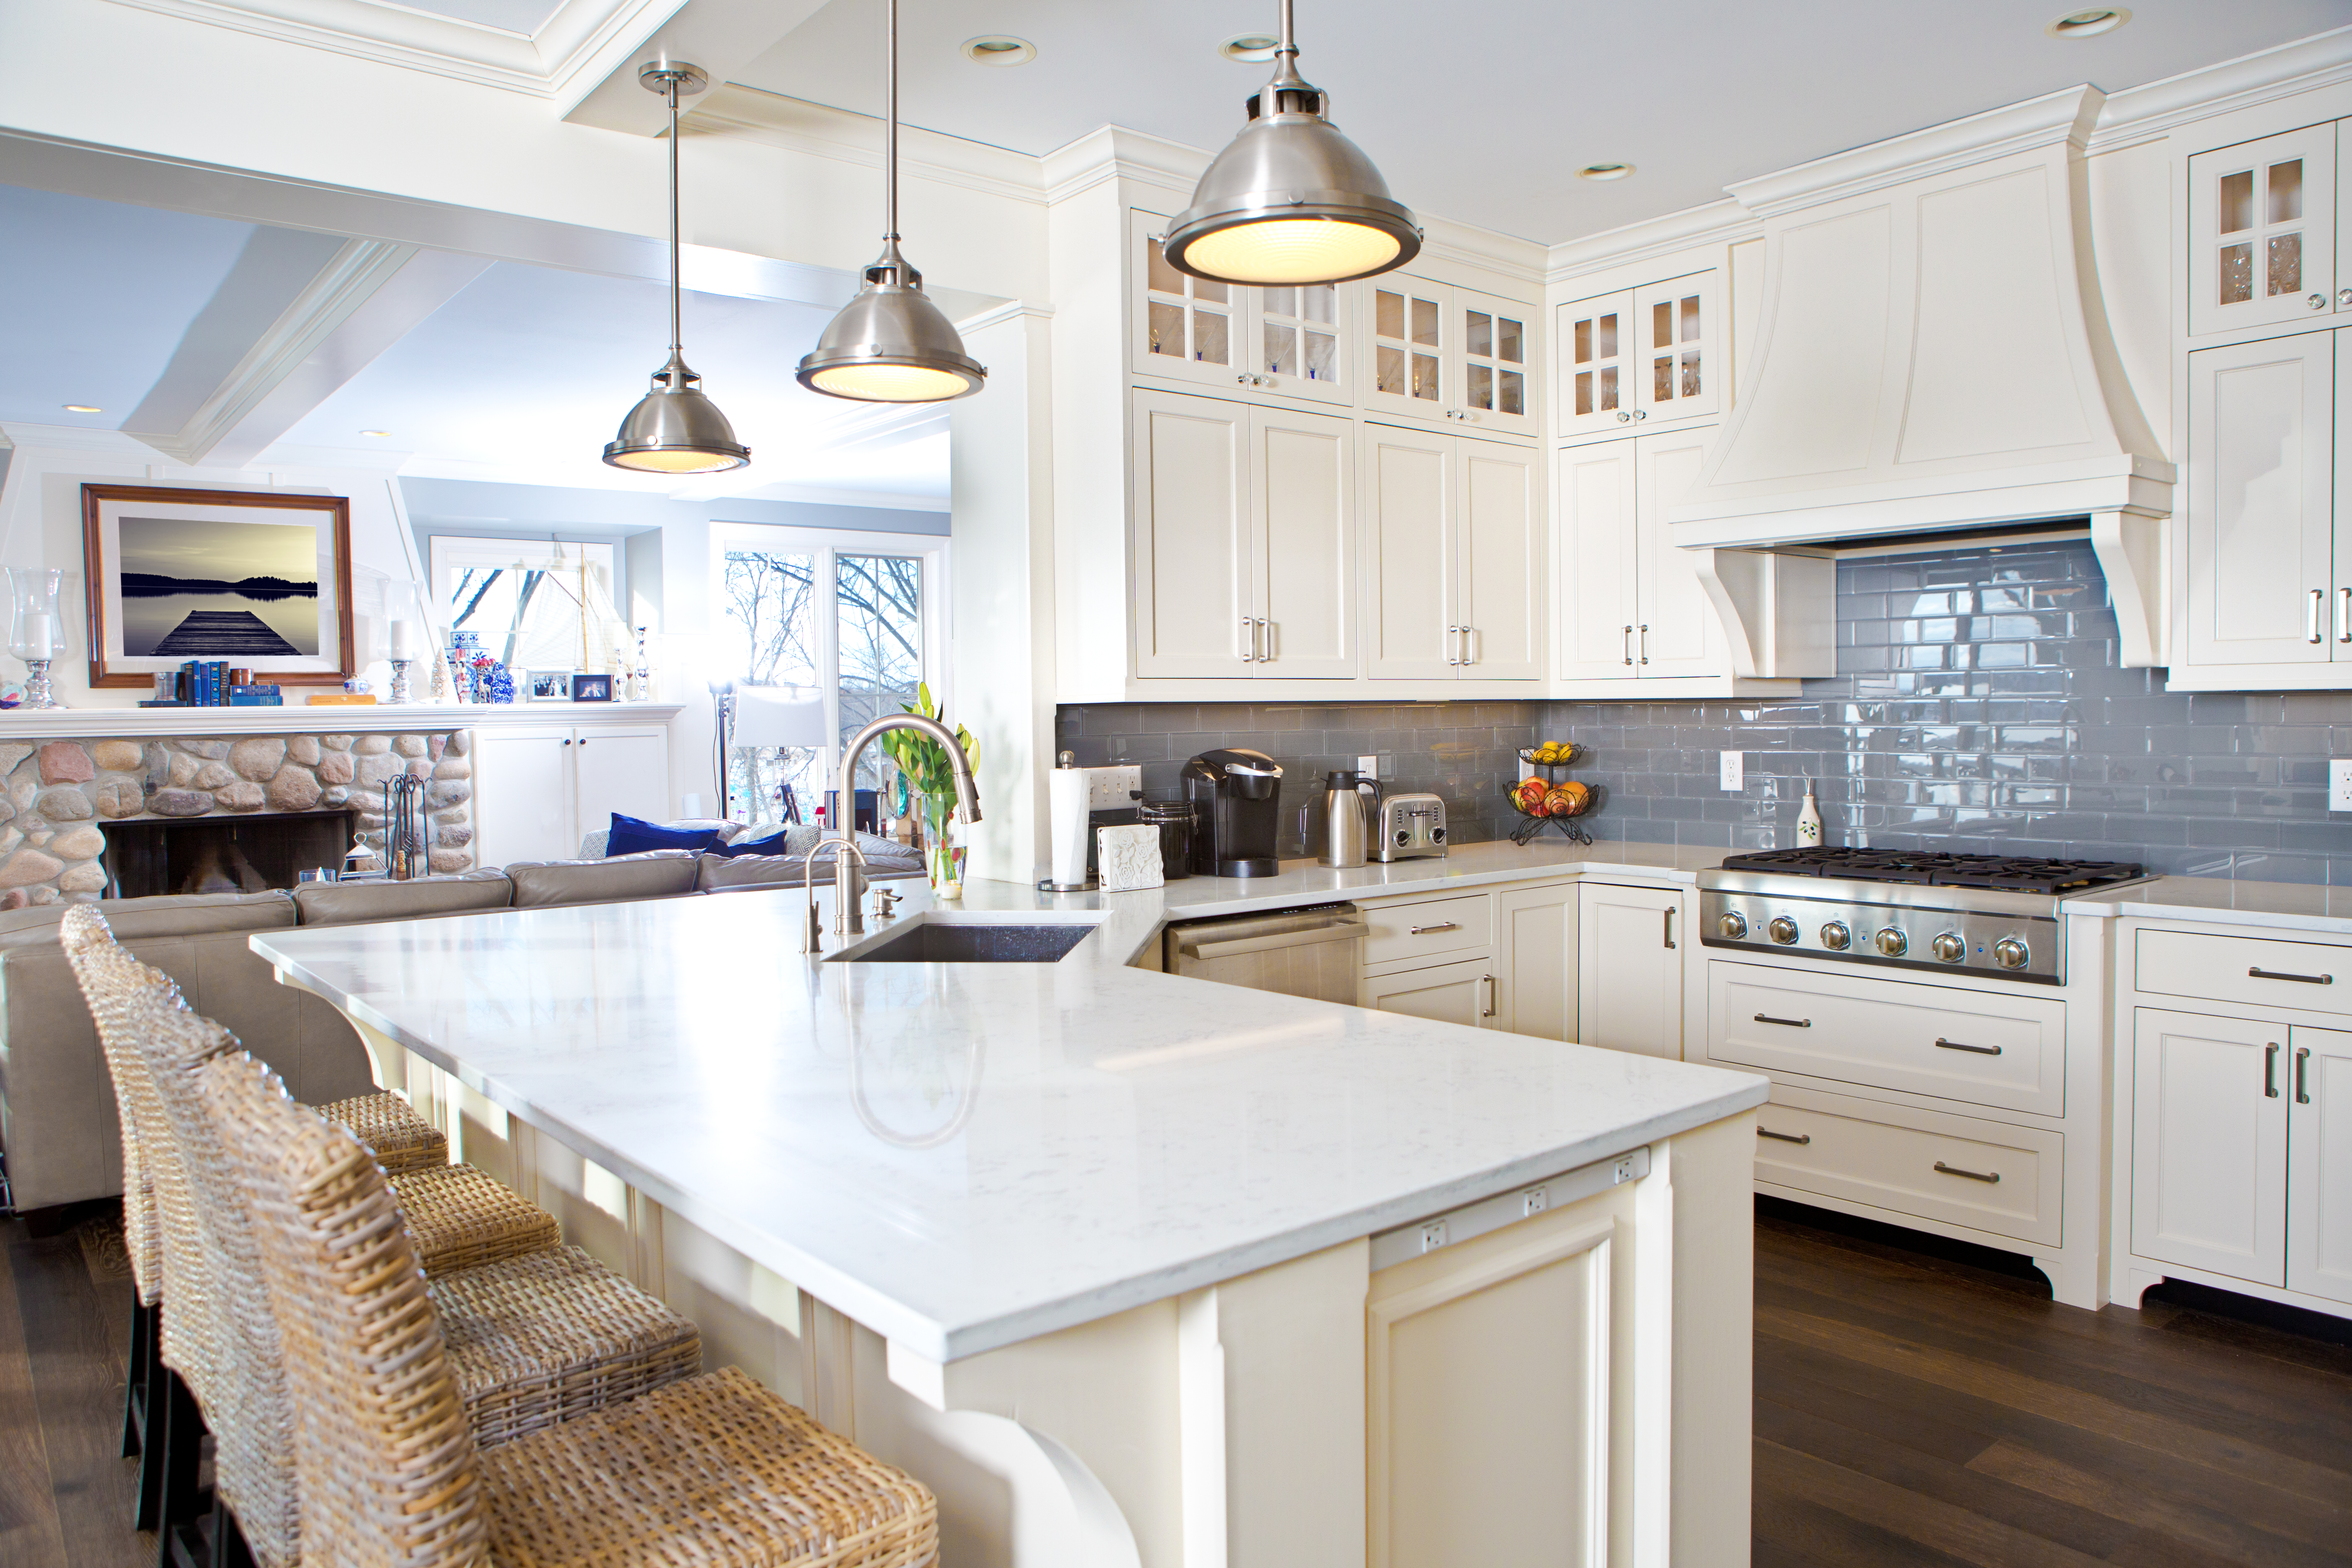 How To Install A Light Fixture If There Is No Electrical Box Hunker